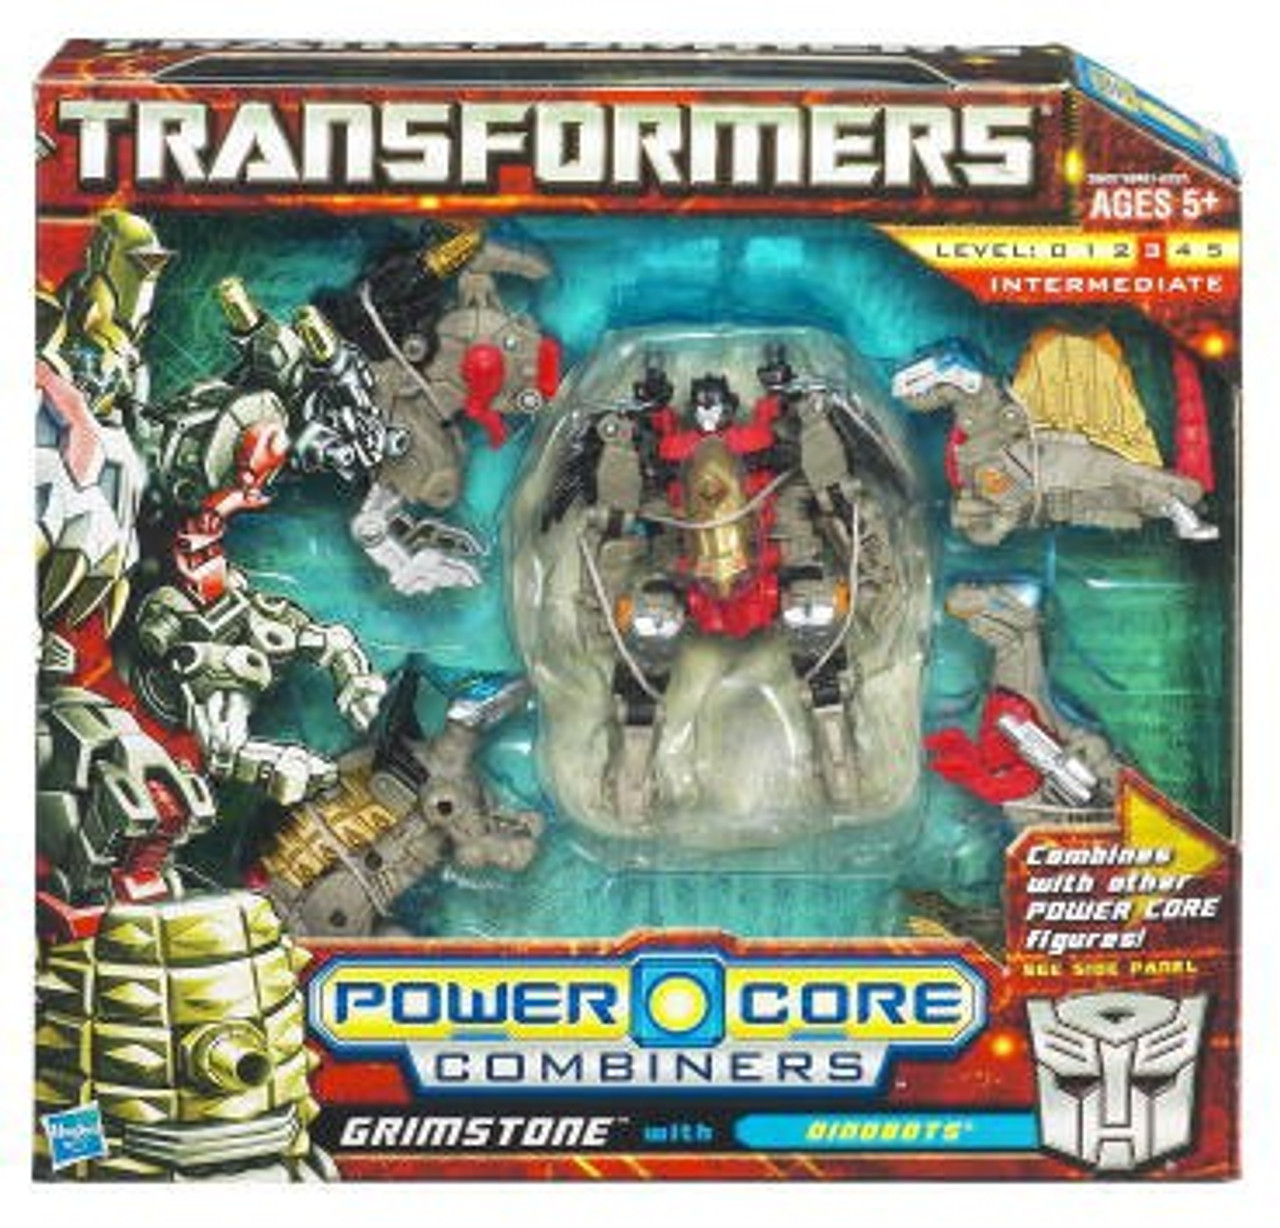 Transformers Power Core Combiners Grimstone with Dinobots Action Figure 2-Pack